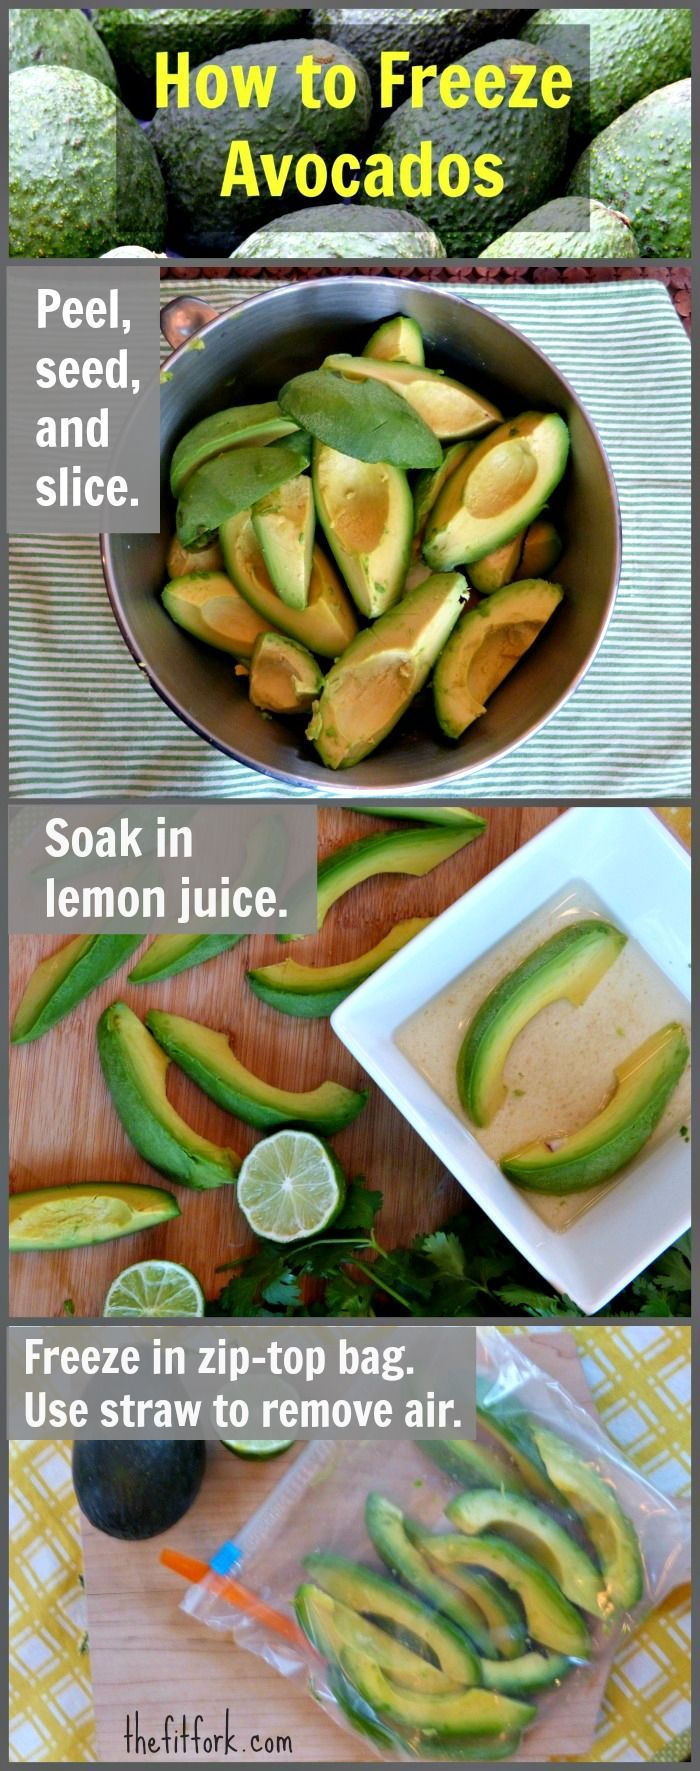 Find out how to freeze avocado slices -- it's the perfect way to save the summer's bounty for guacamole and other healthy recipes for any season.